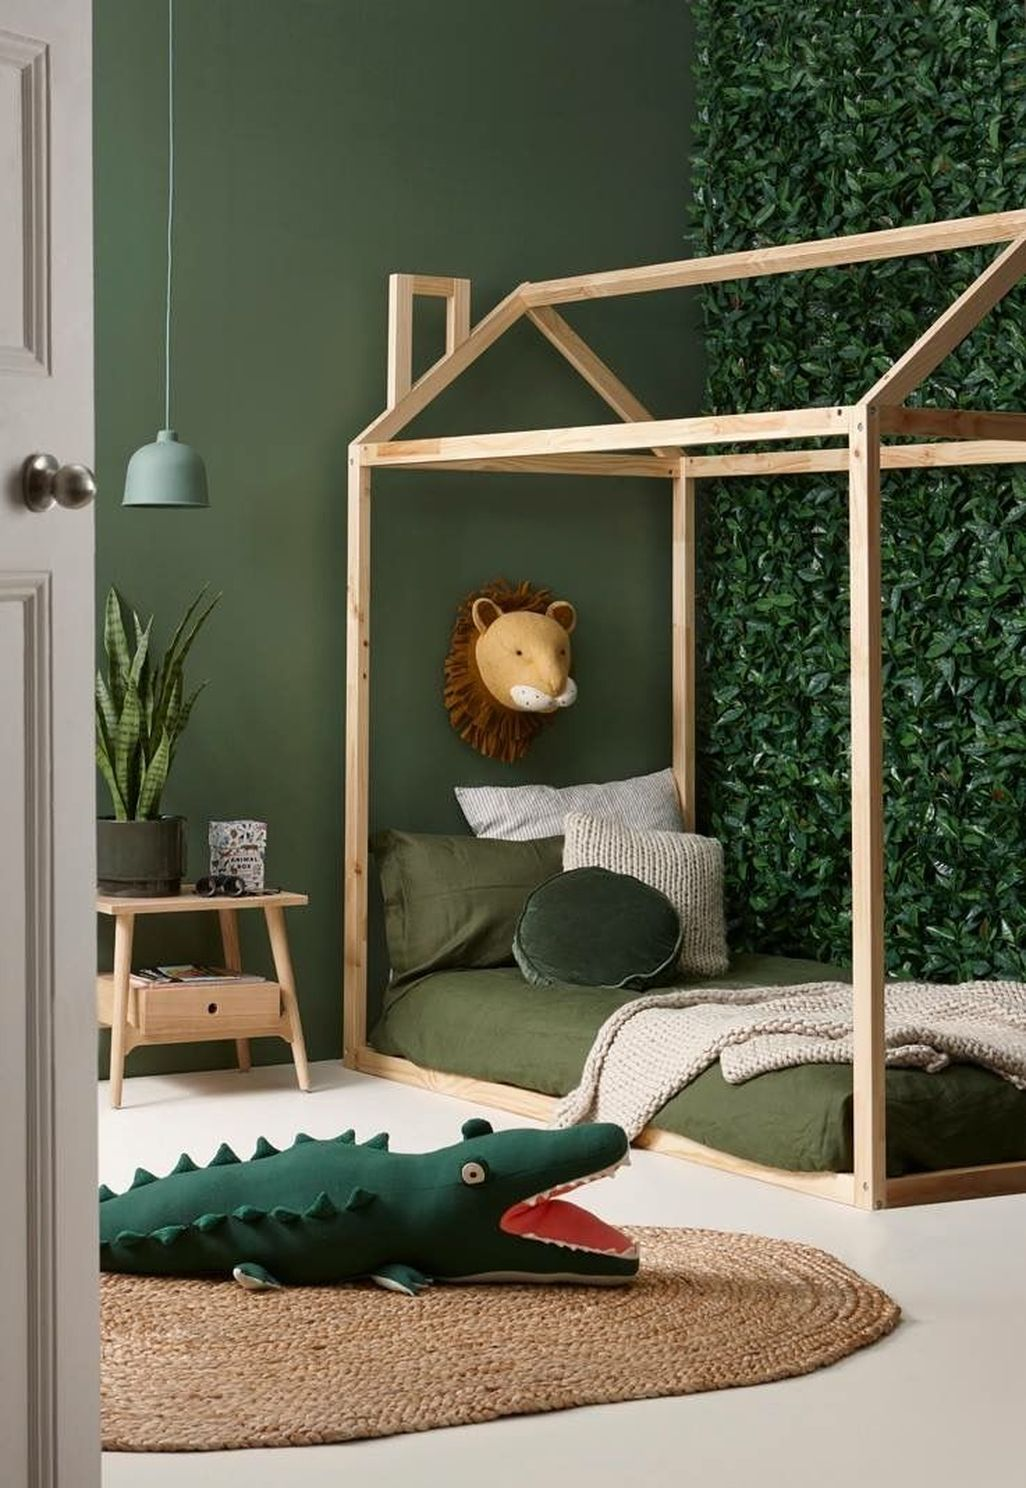 Awesome 40 cool bed kids design ideas more at https trend4homy